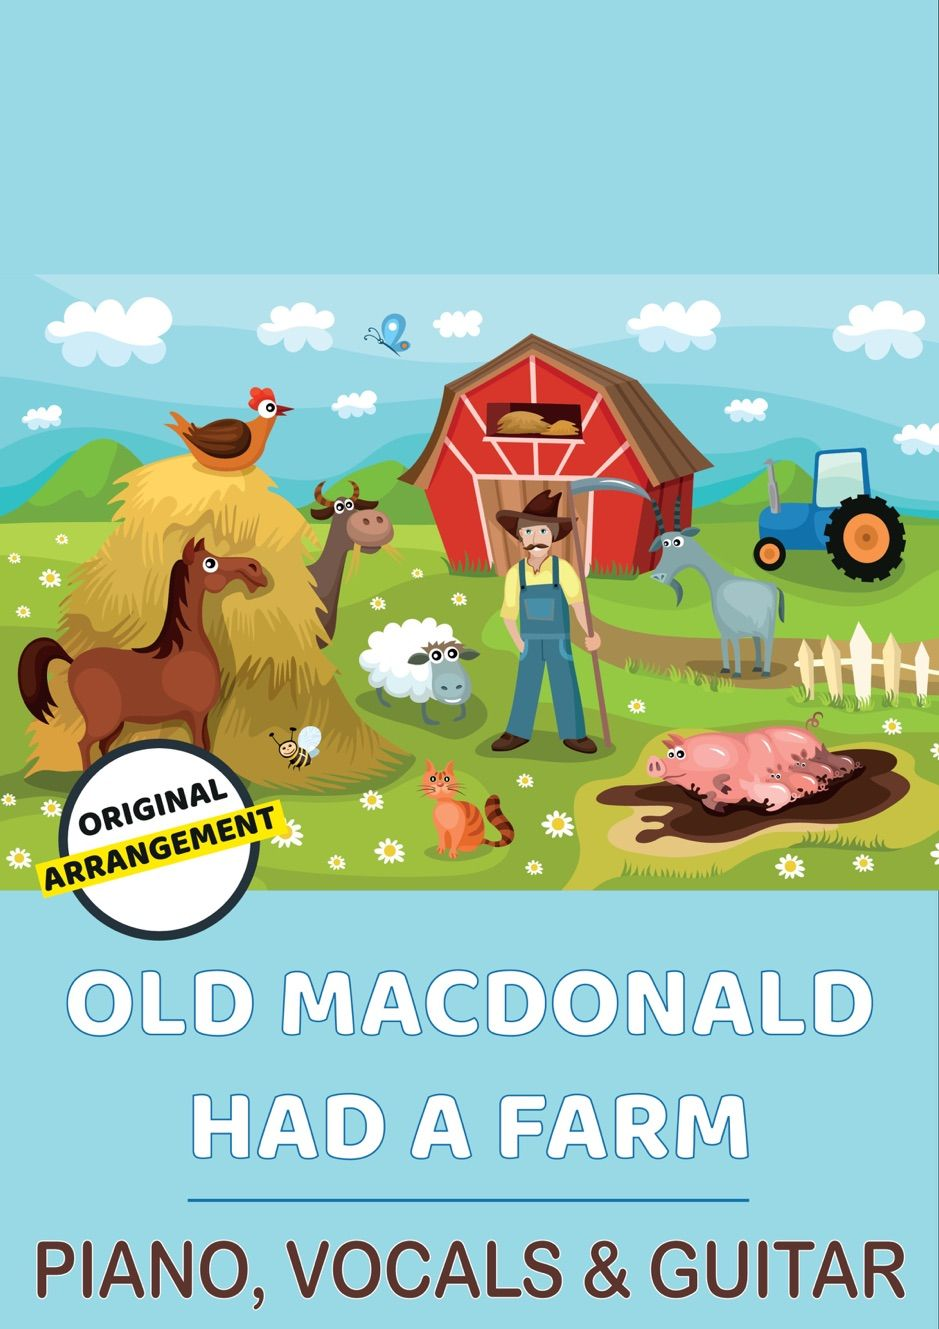 Old Macdonald Had A Farm Spon Farm Books Download Macdonald Ad Childrens Songs Music Book What Child Is This